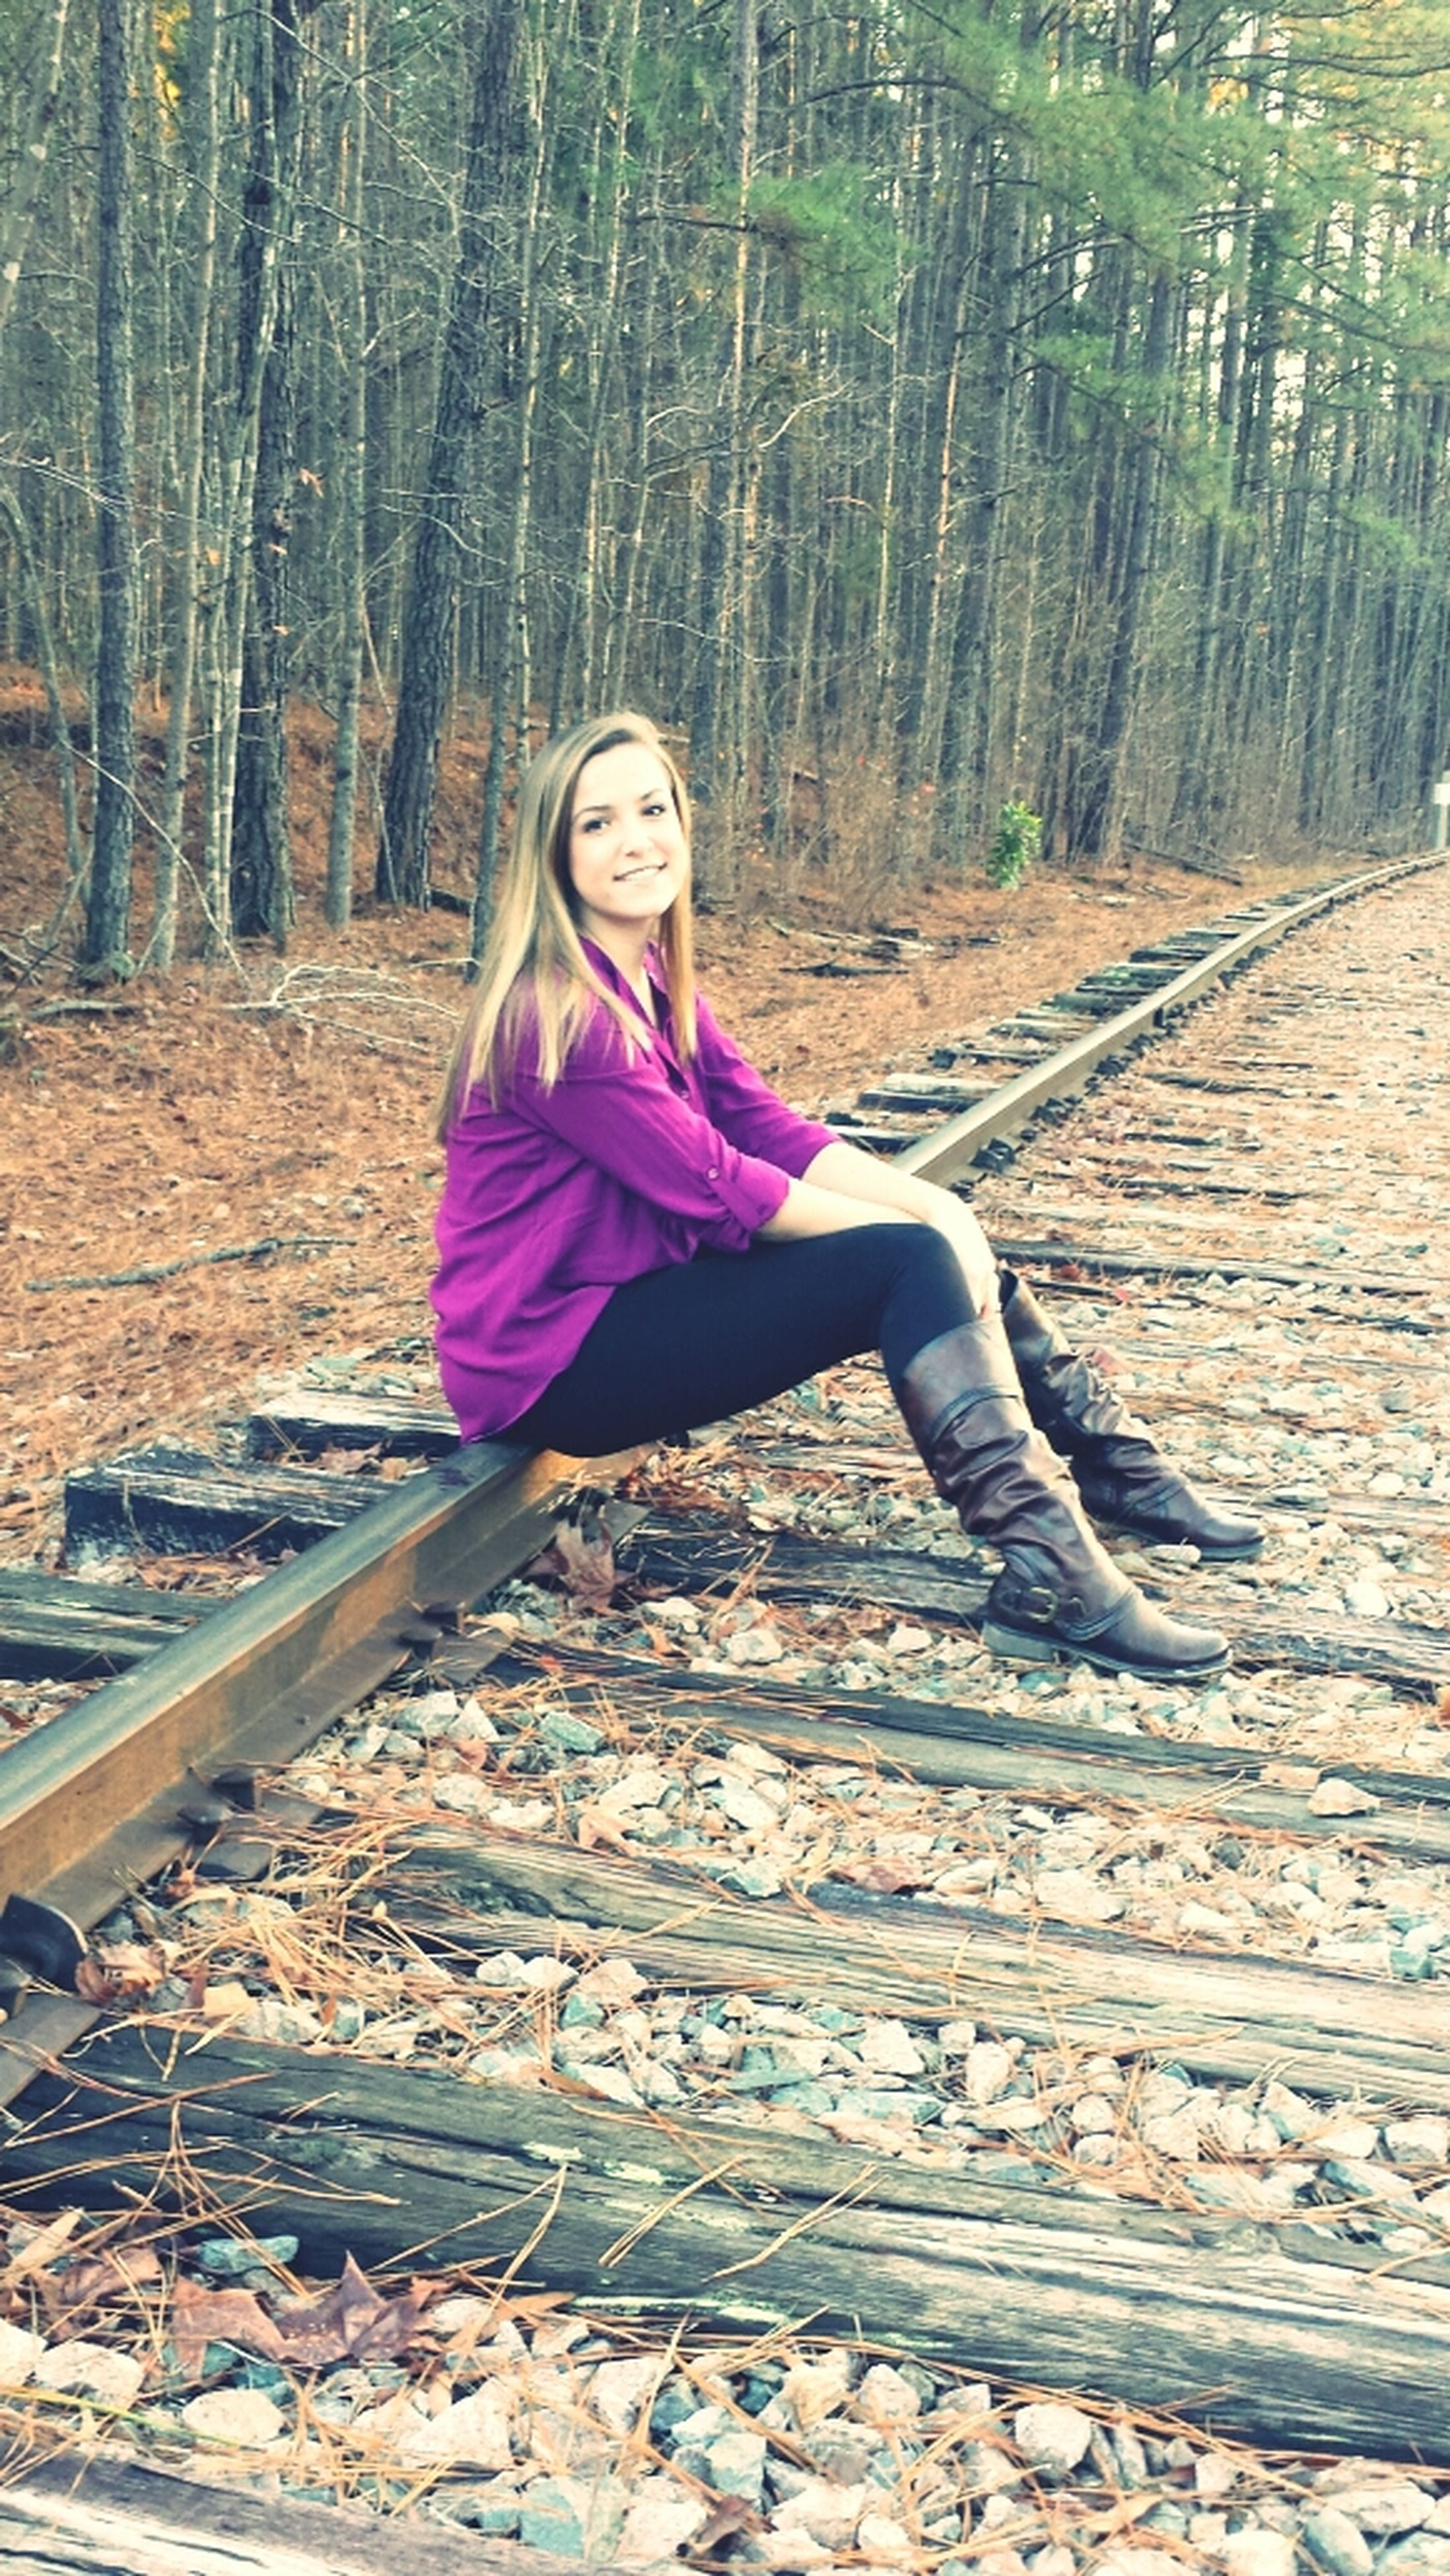 full length, person, casual clothing, lifestyles, young adult, leisure activity, tree, looking at camera, forest, portrait, front view, young women, standing, smiling, sitting, happiness, carefree, wood - material